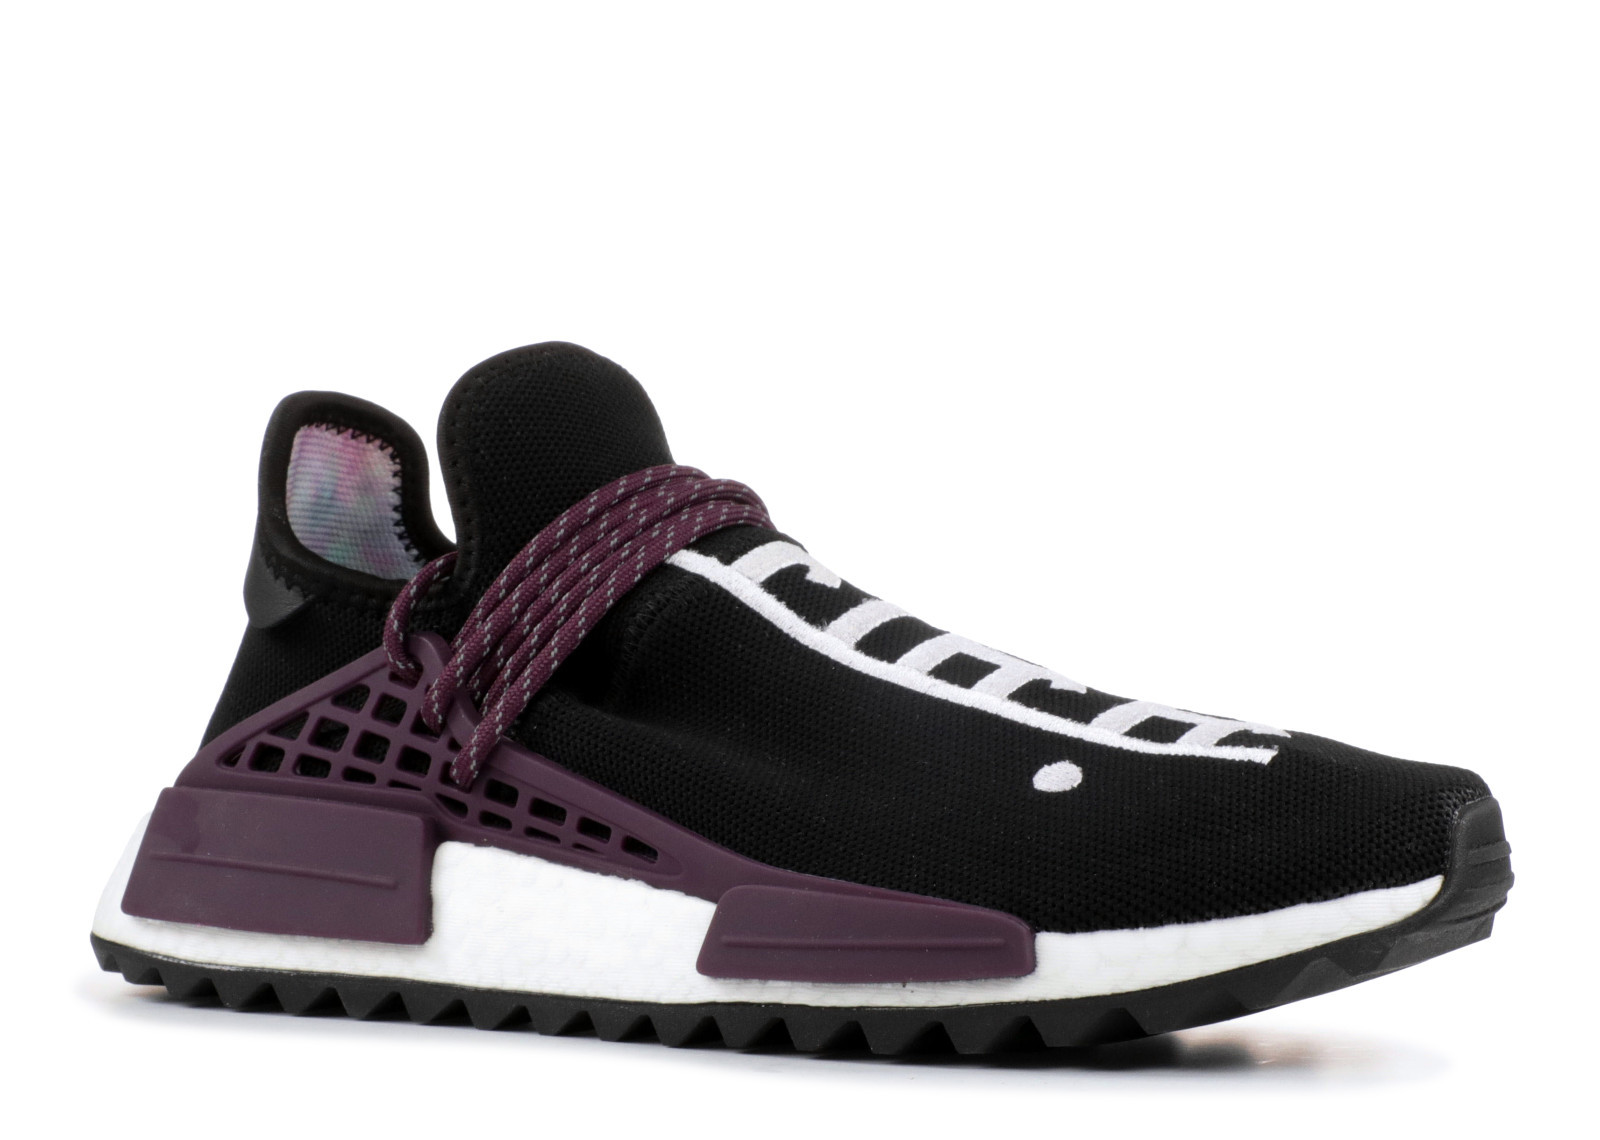 PW HUMAN RACE HOLI NMD MC EQUALITY image 2